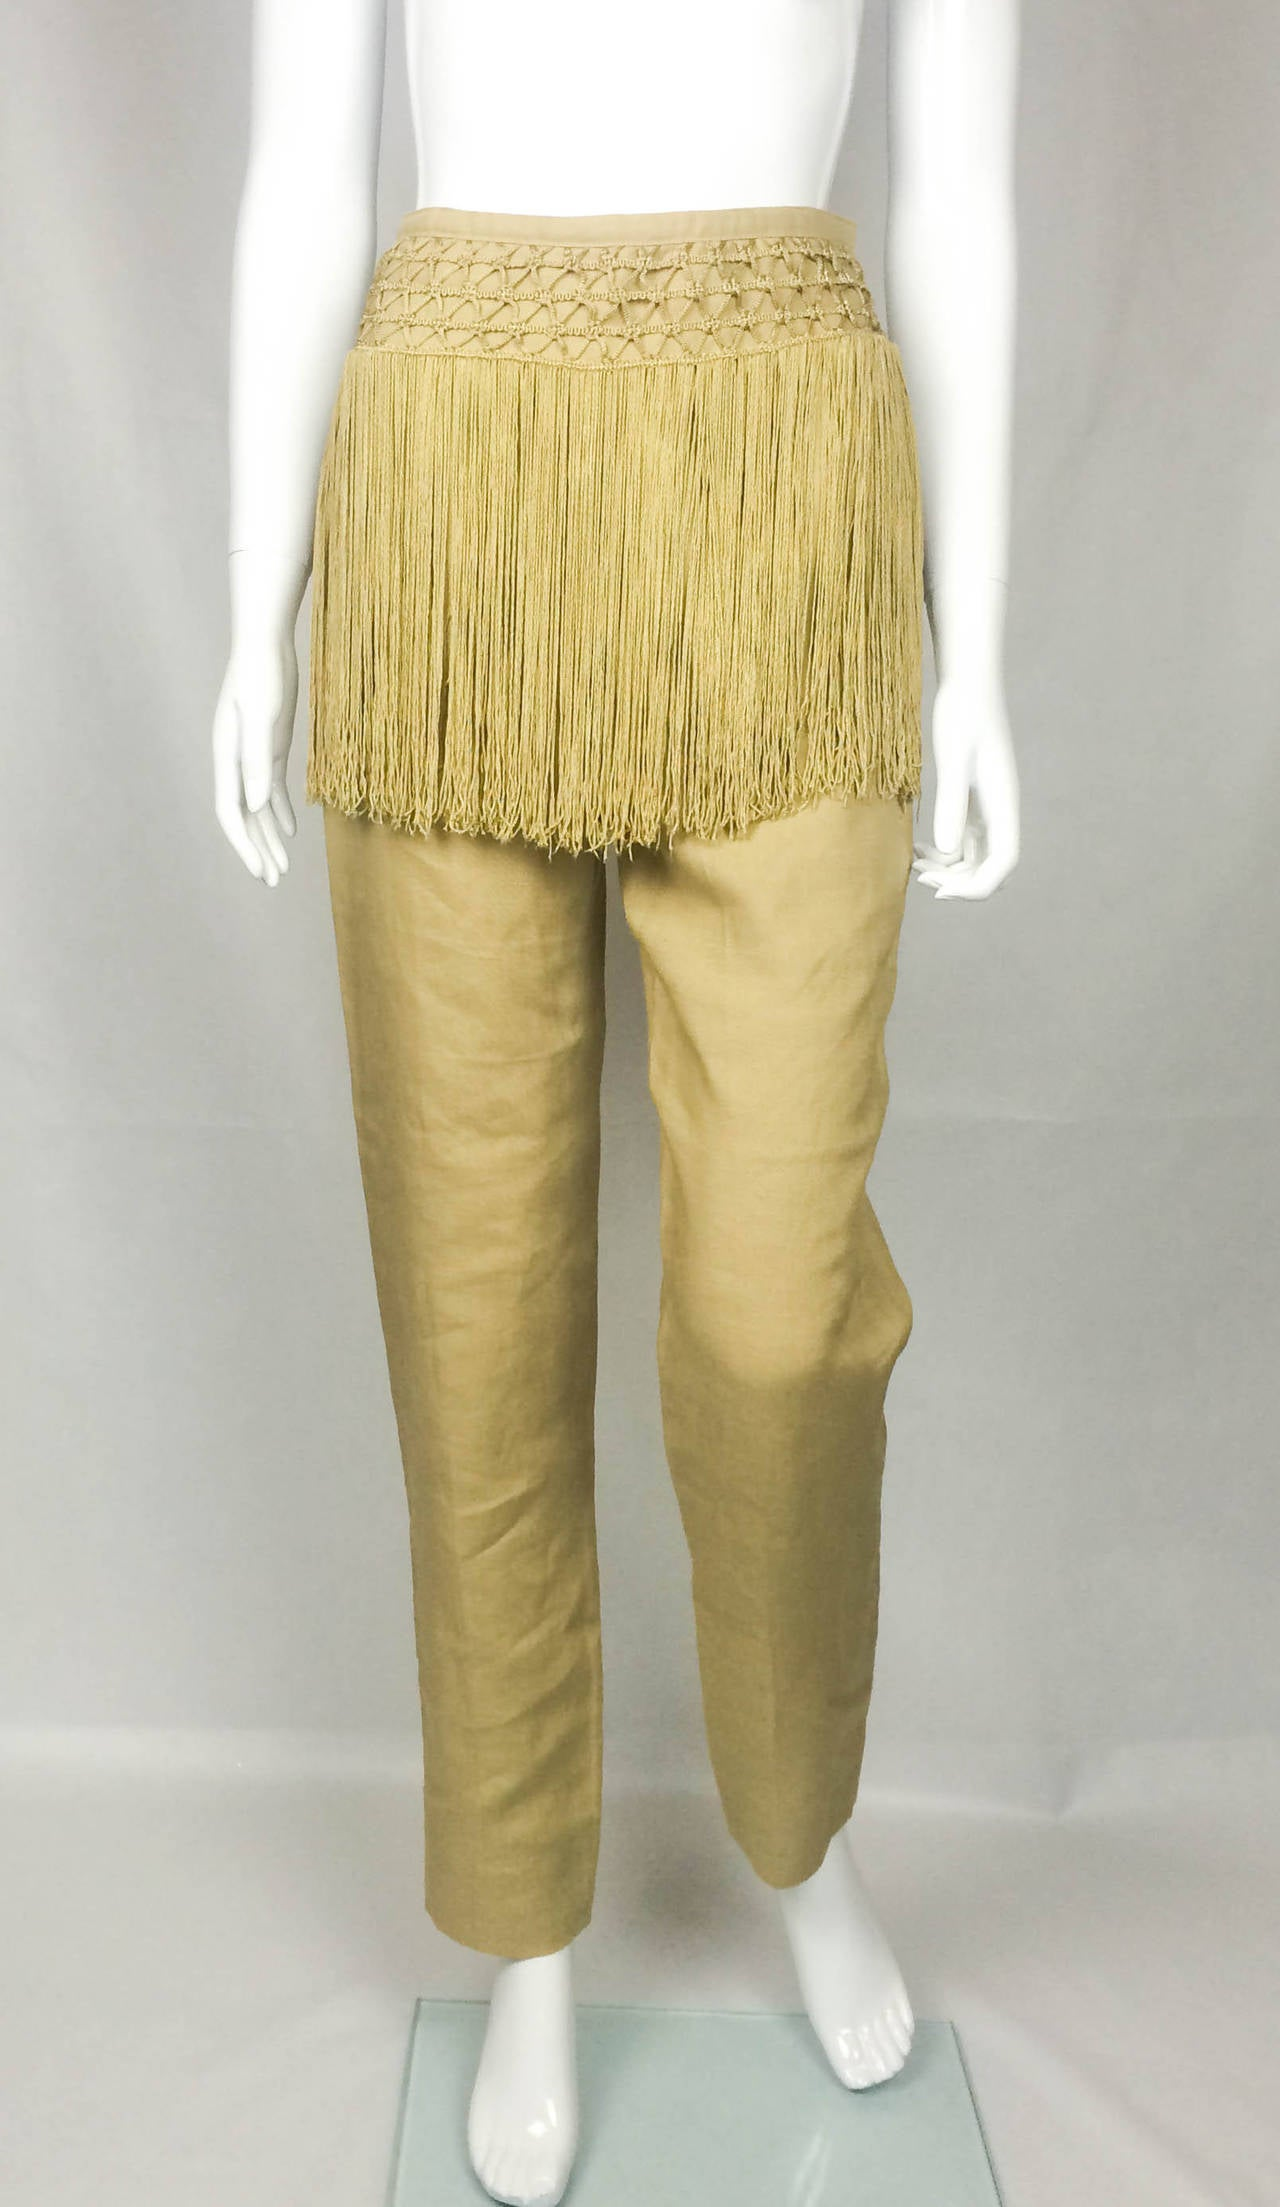 Valentino Fringed Linen Pants - 1990s 10